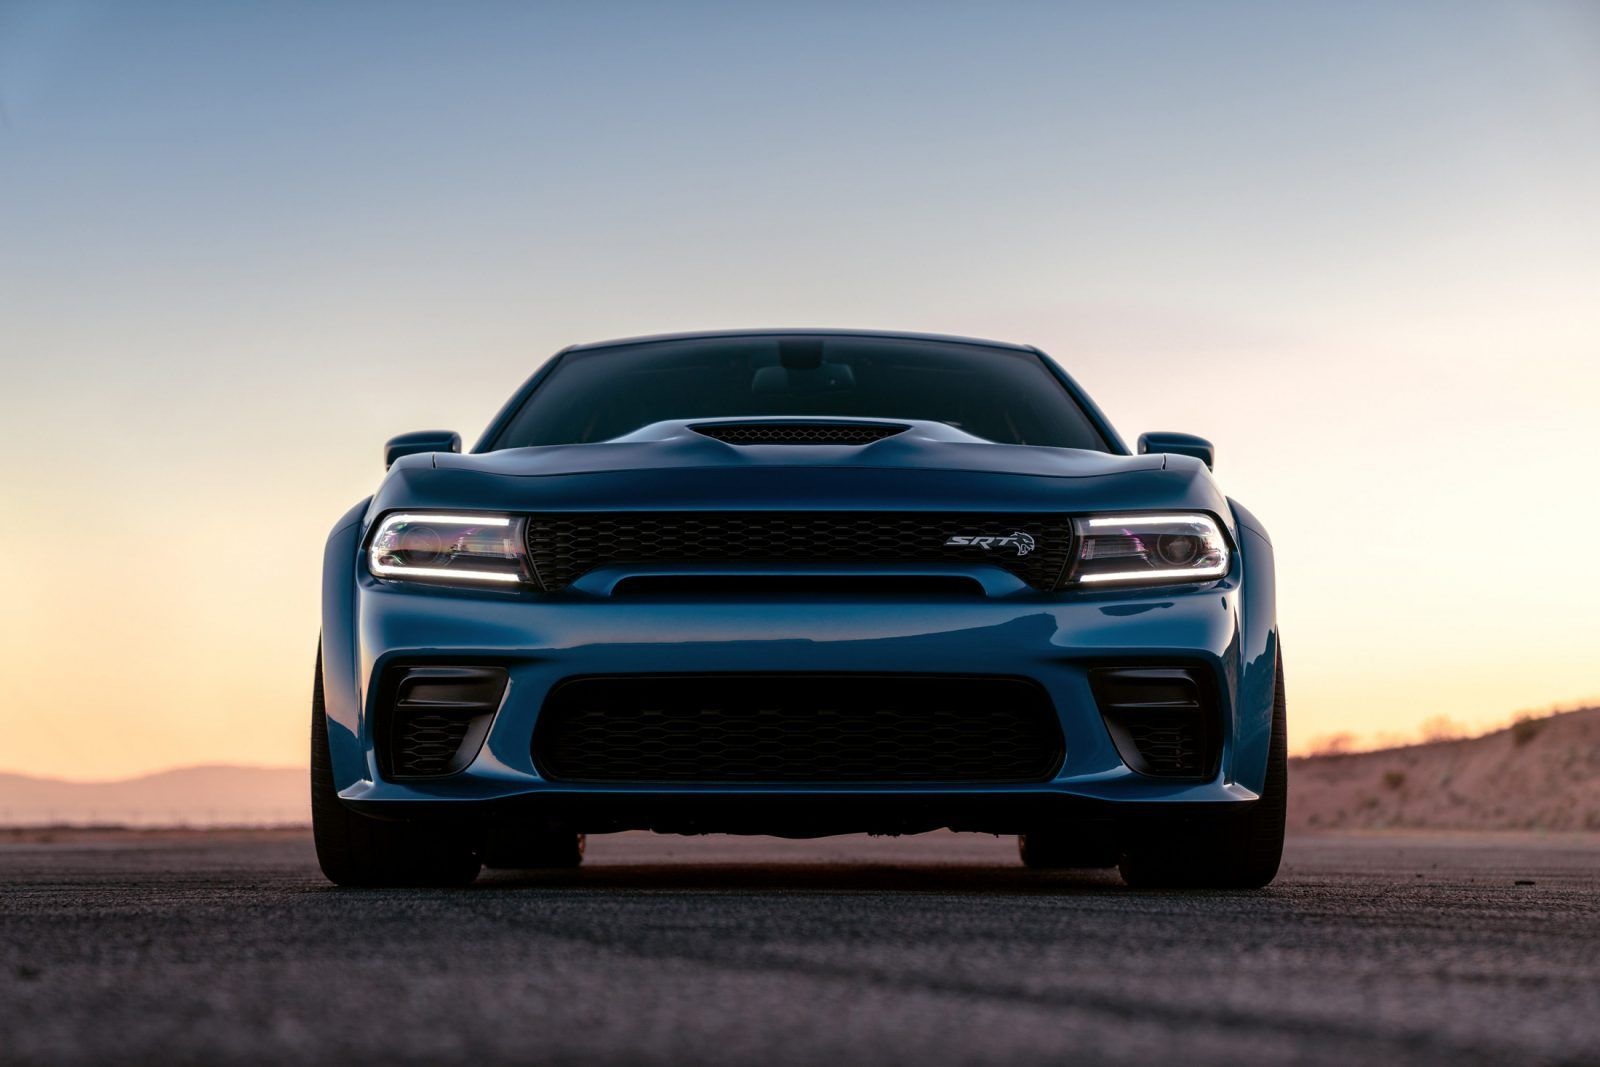 Dodge Unveils Wild 2020 Charger Widebody Scat Pack And Hellcat Models Video Charger Srt Hellcat Charger Srt Dodge Charger